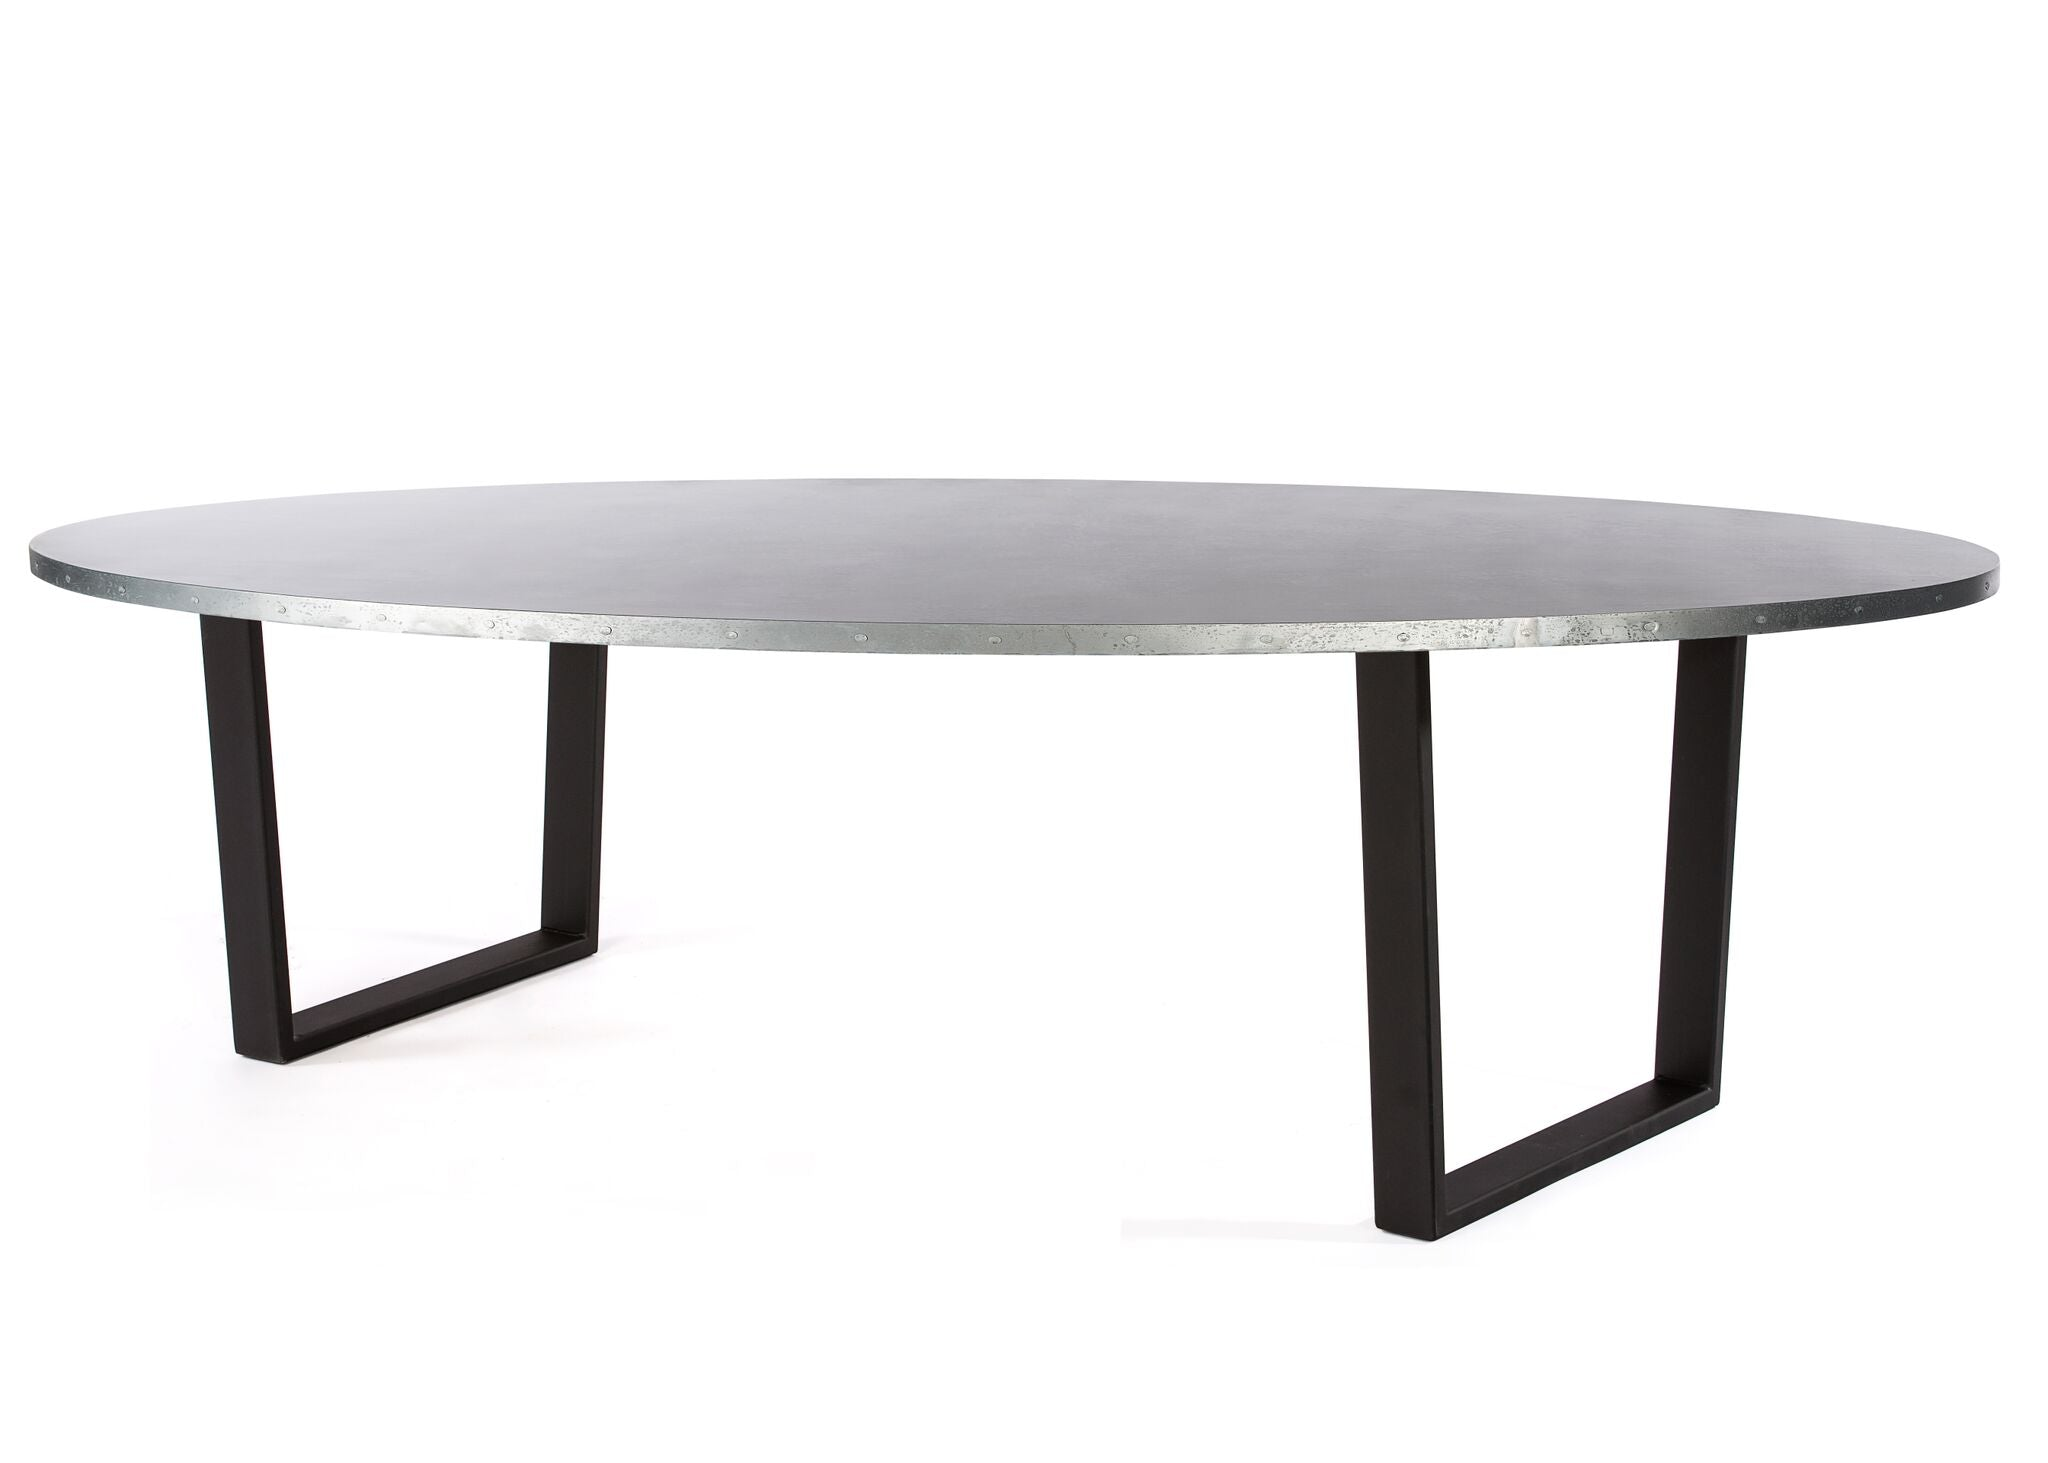 "Zinc Oval Tables | Trenton Table | CLASSIC | White on Steel | CUSTOM SIZE 60""L 37""W 30""H 